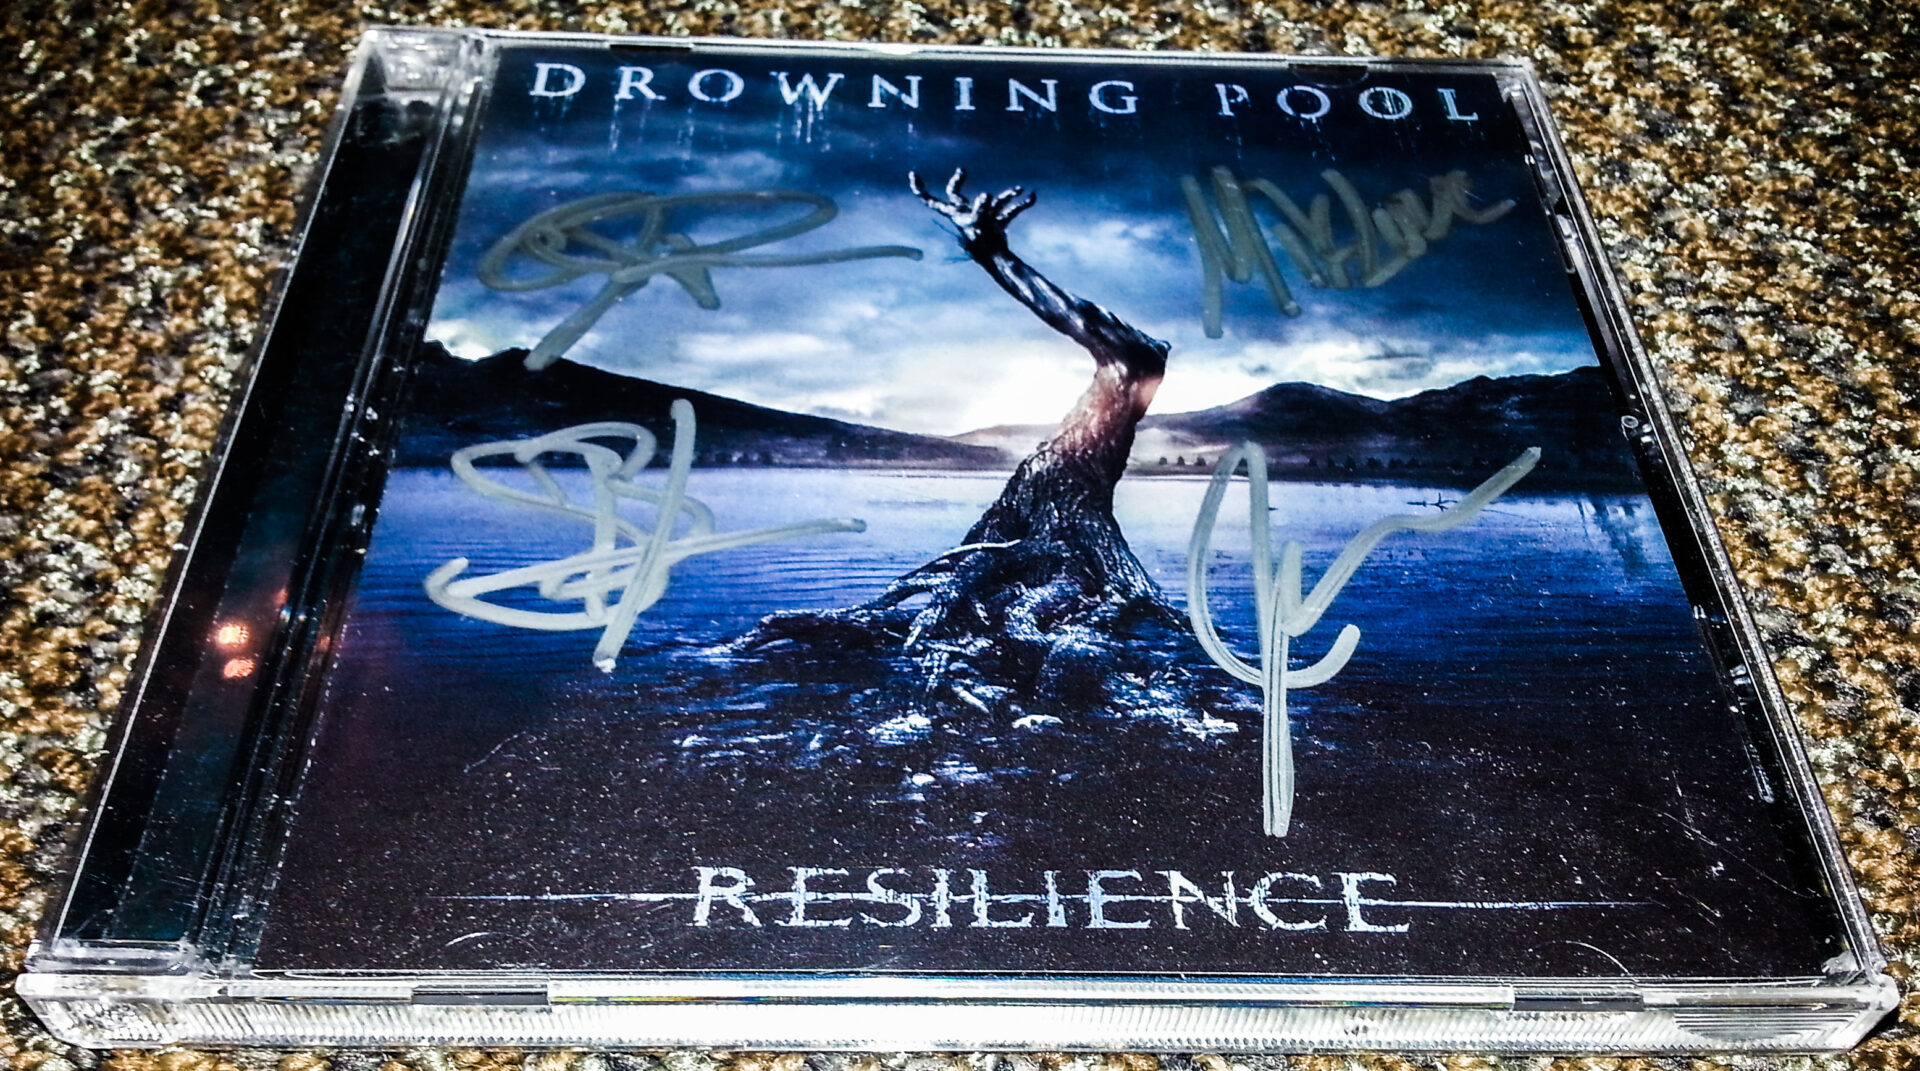 Drowning Pool Signed CD - Contest